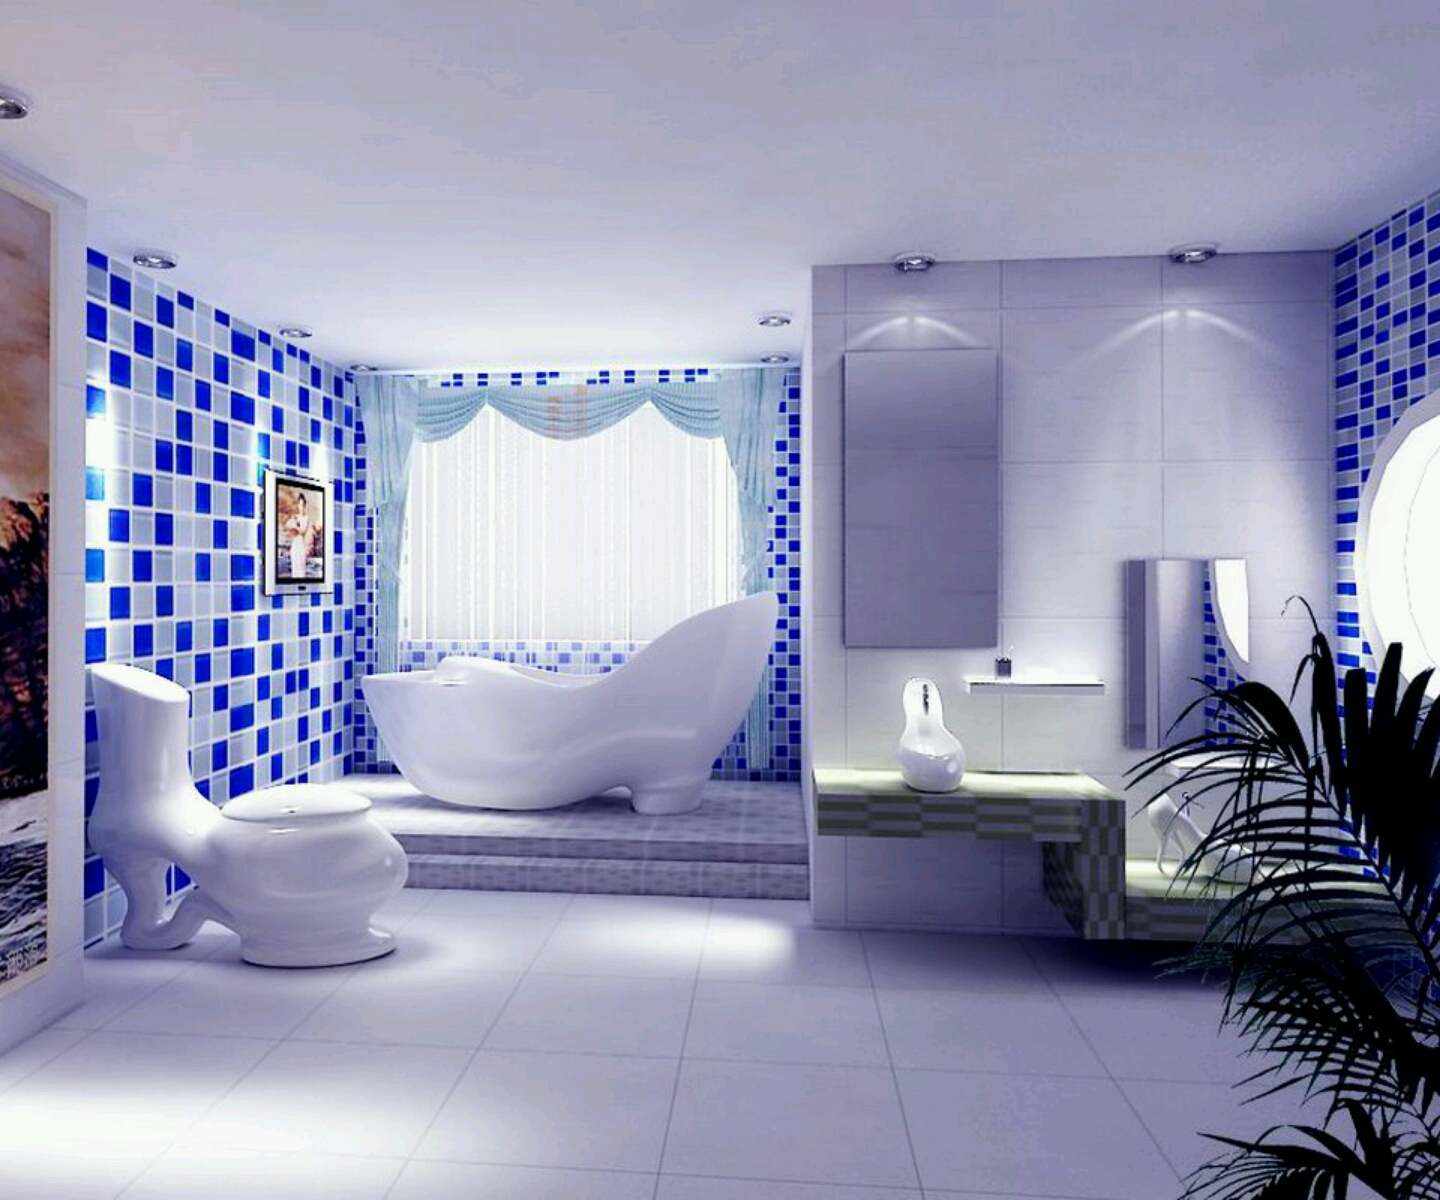 New Home Designs Latest Modern Interior Decoration: Home Designs: Ultra Modern Washroom Designs Ideas